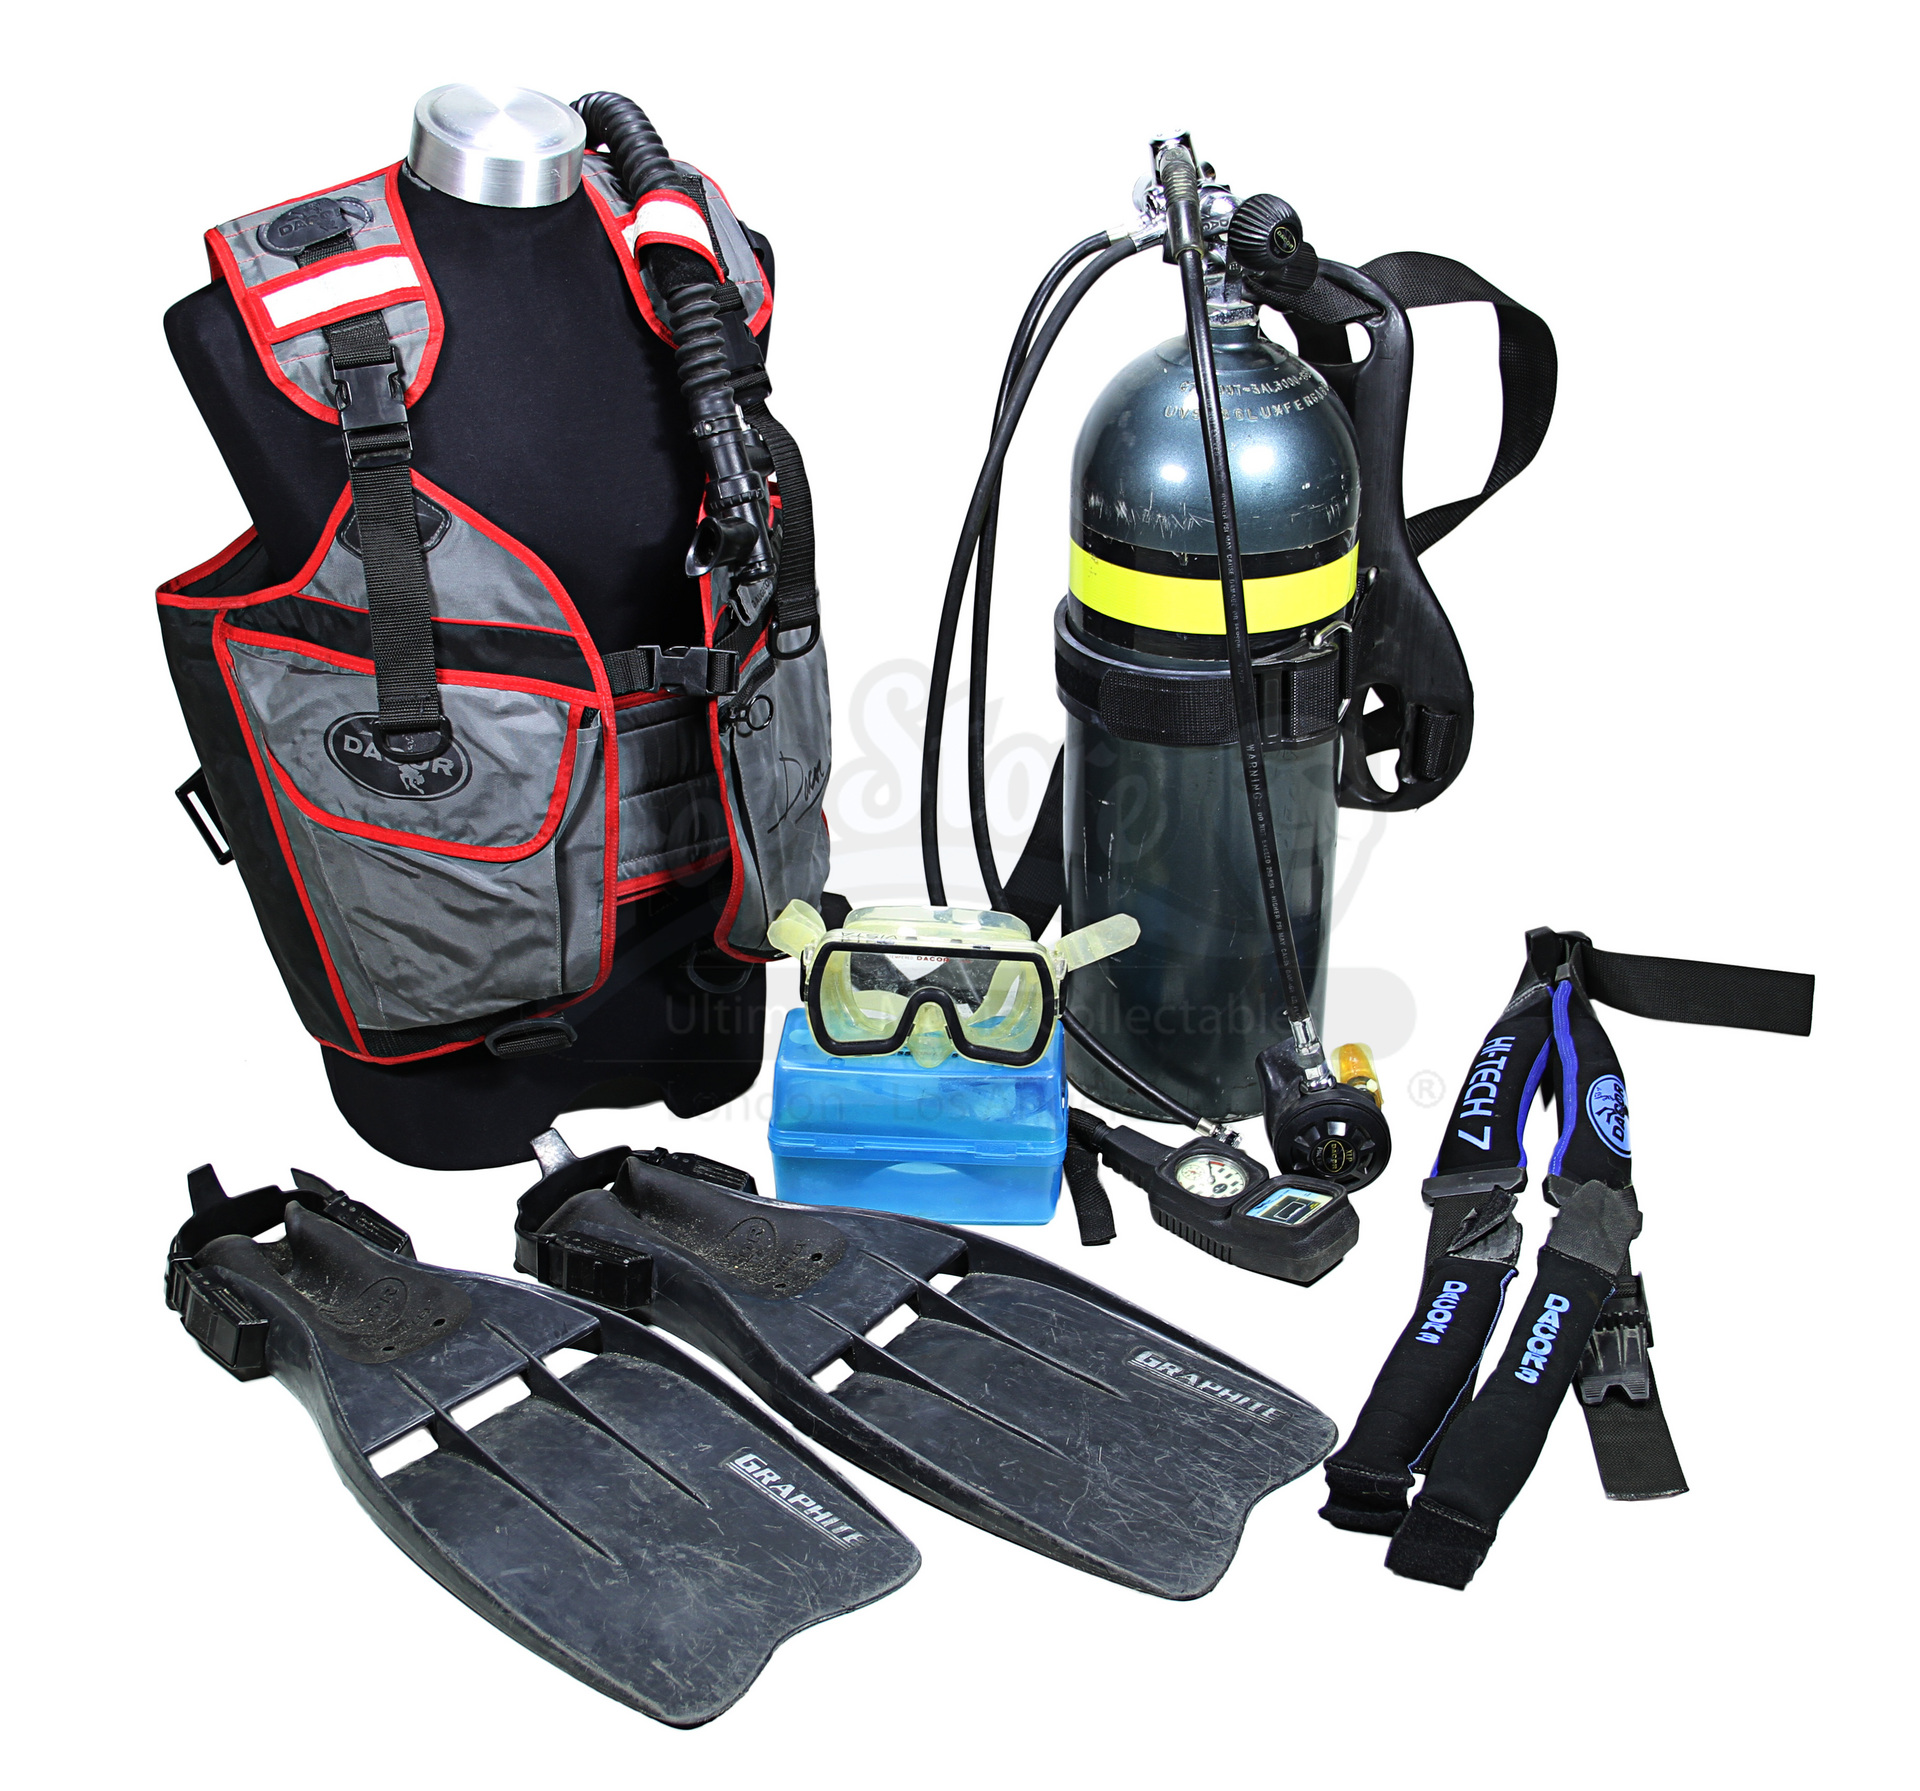 James Bond: Licence To Kill James Bond's (Timothy Dalton) Scuba Equipment